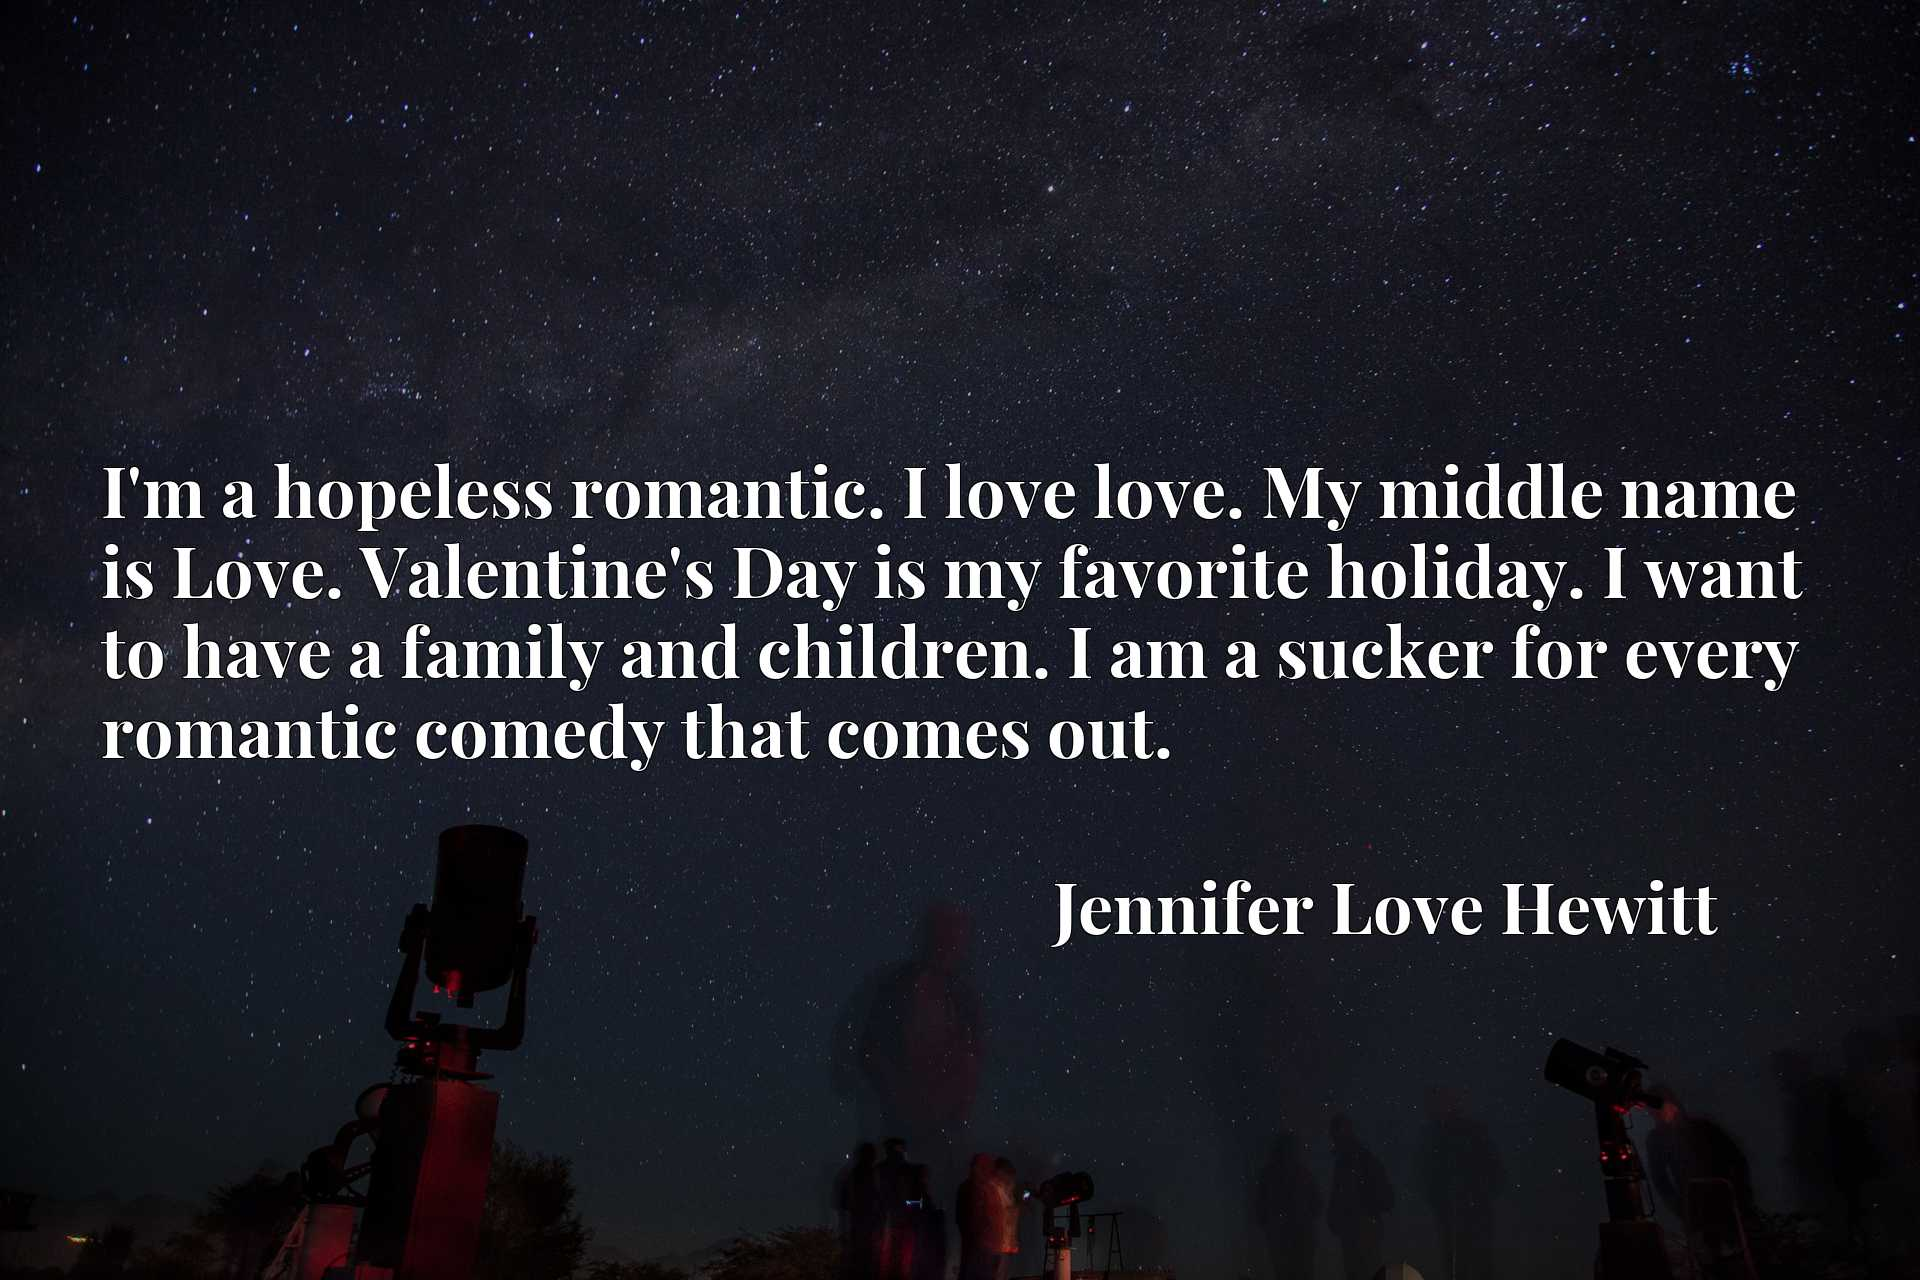 I'm a hopeless romantic. I love love. My middle name is Love. Valentine's Day is my favorite holiday. I want to have a family and children. I am a sucker for every romantic comedy that comes out.